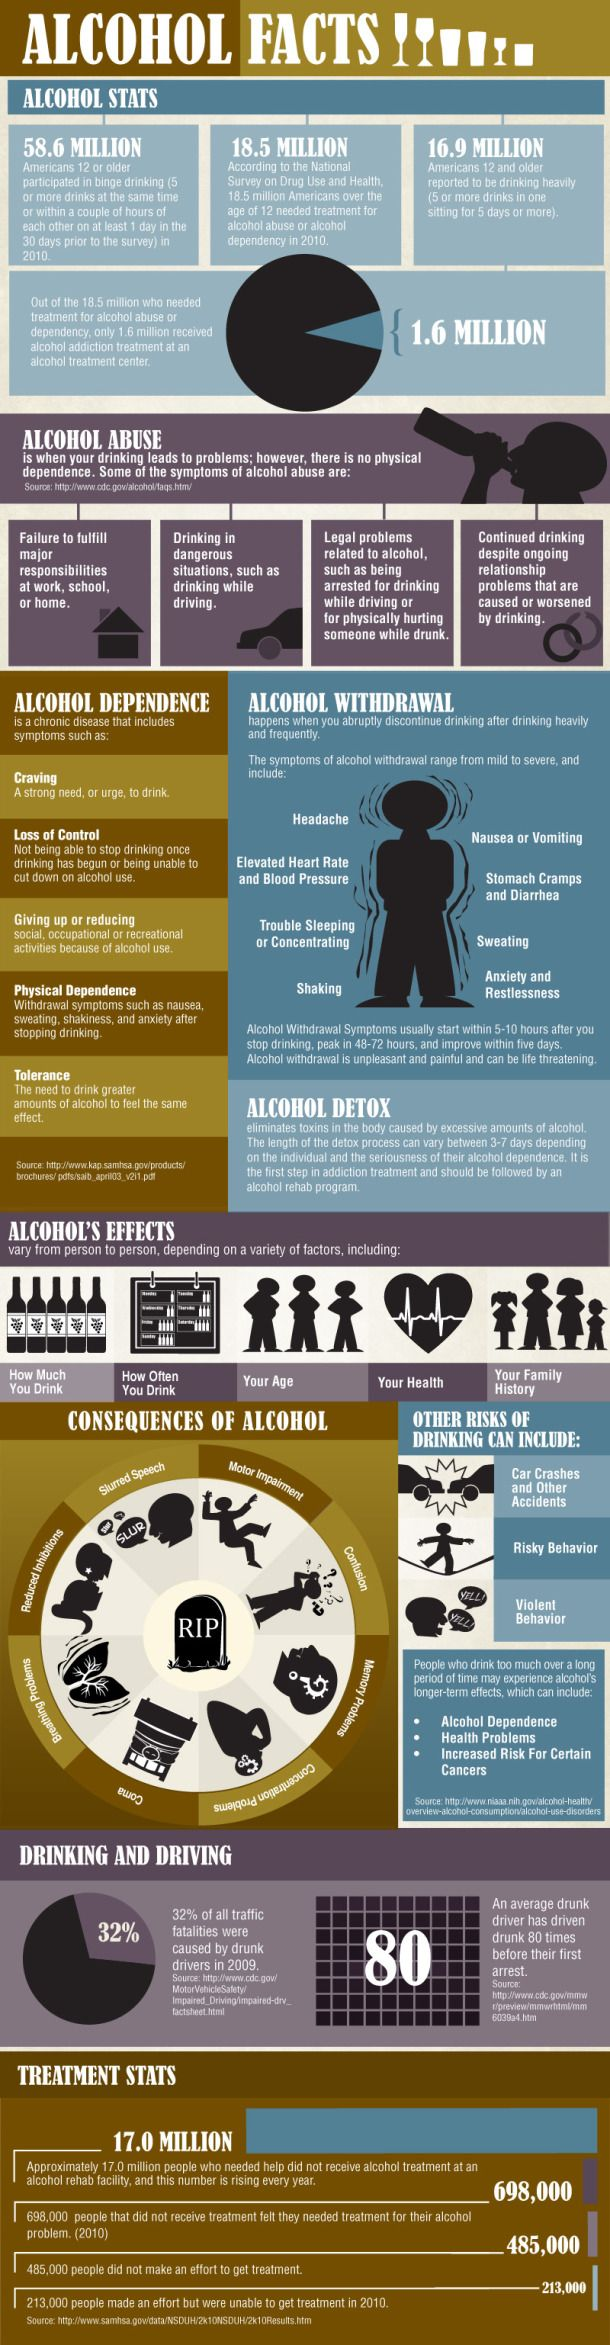 Alcohol Facts #infographic